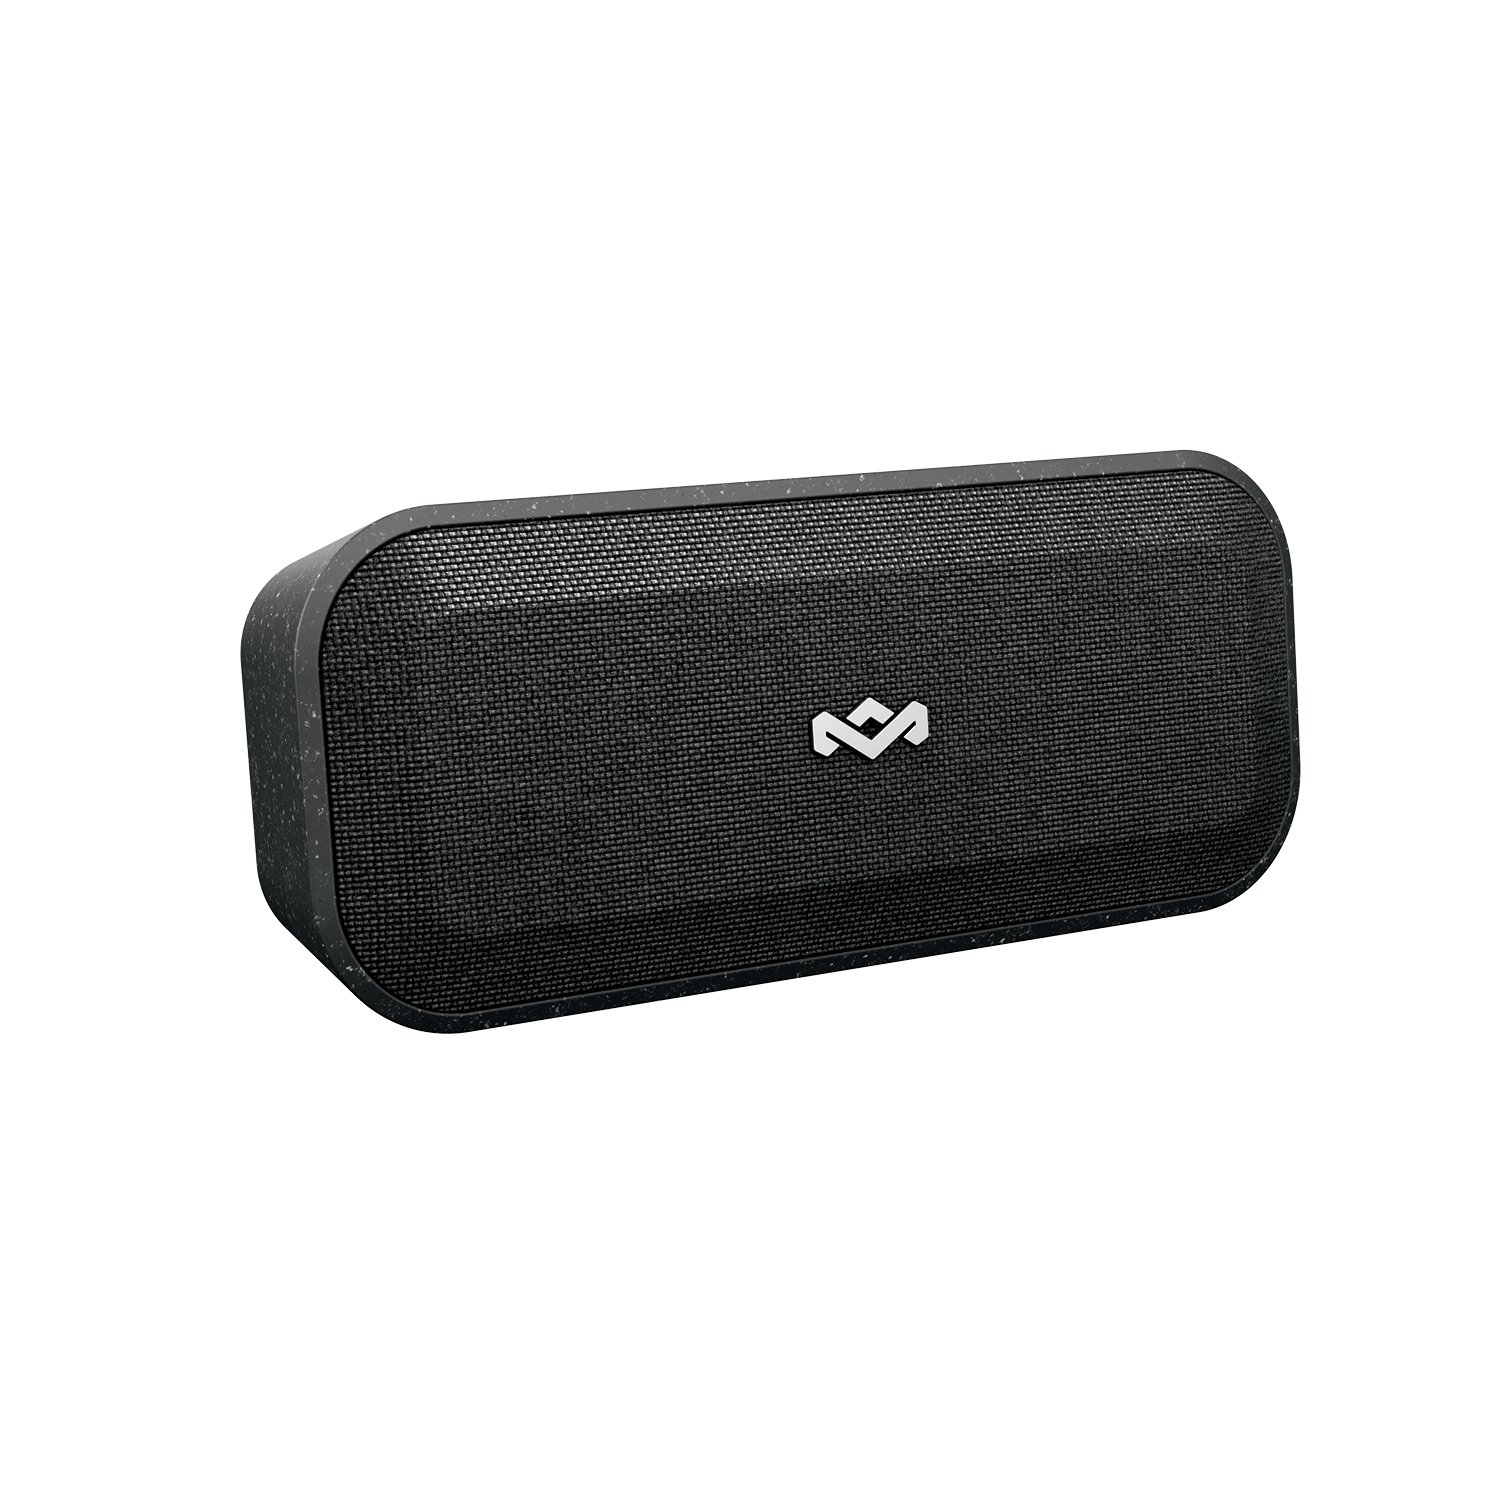 House of Marley EM-JA017-SB - Altavoz Bluetooth Impermeable, Color Negro: Amazon.es: Electrónica